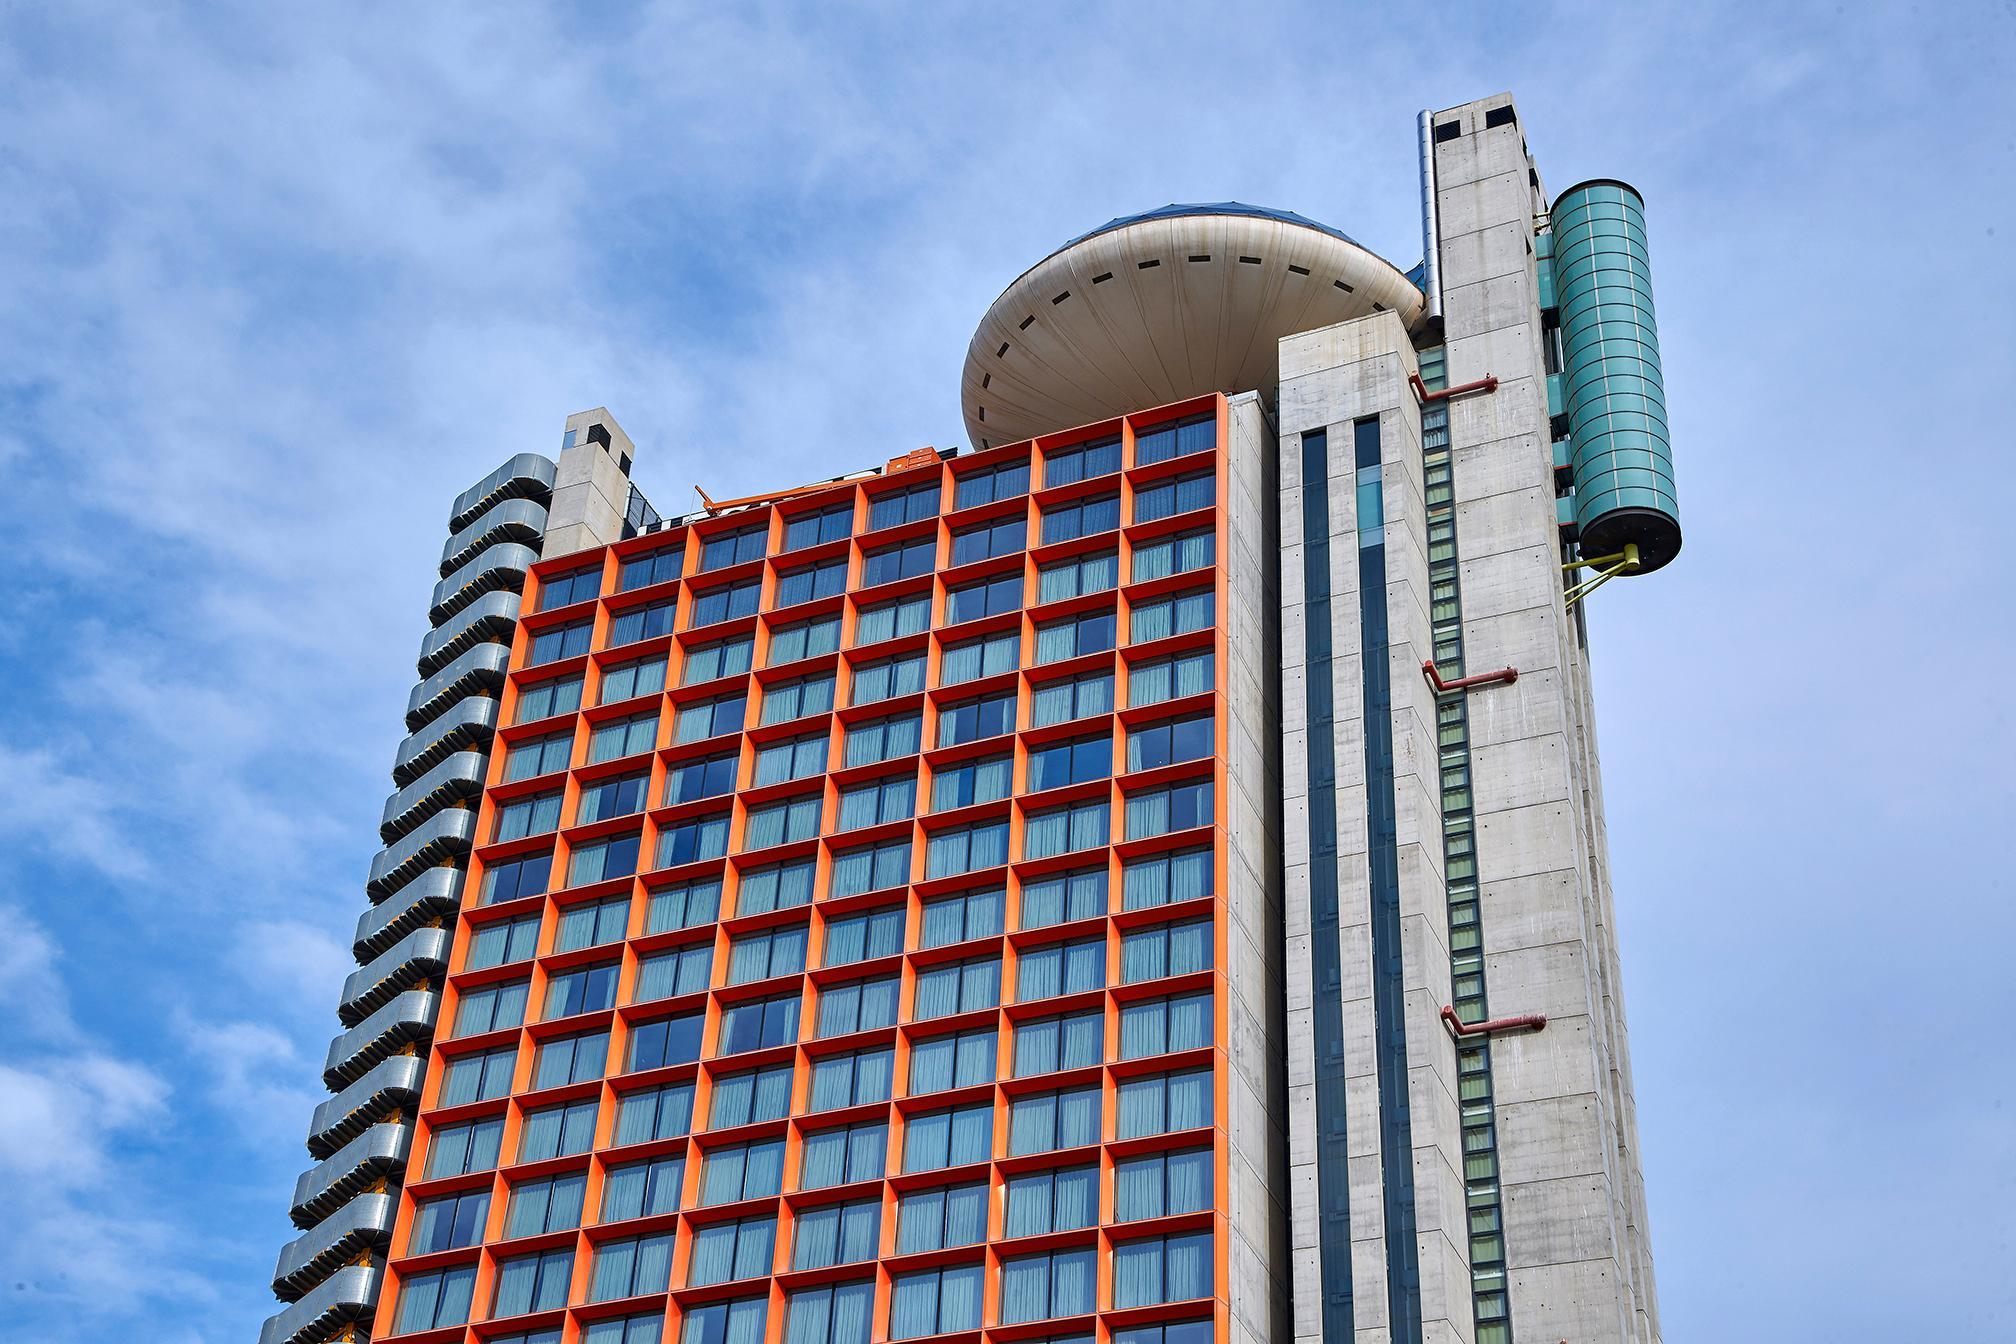 Hyatt Regency Barcelona Tower